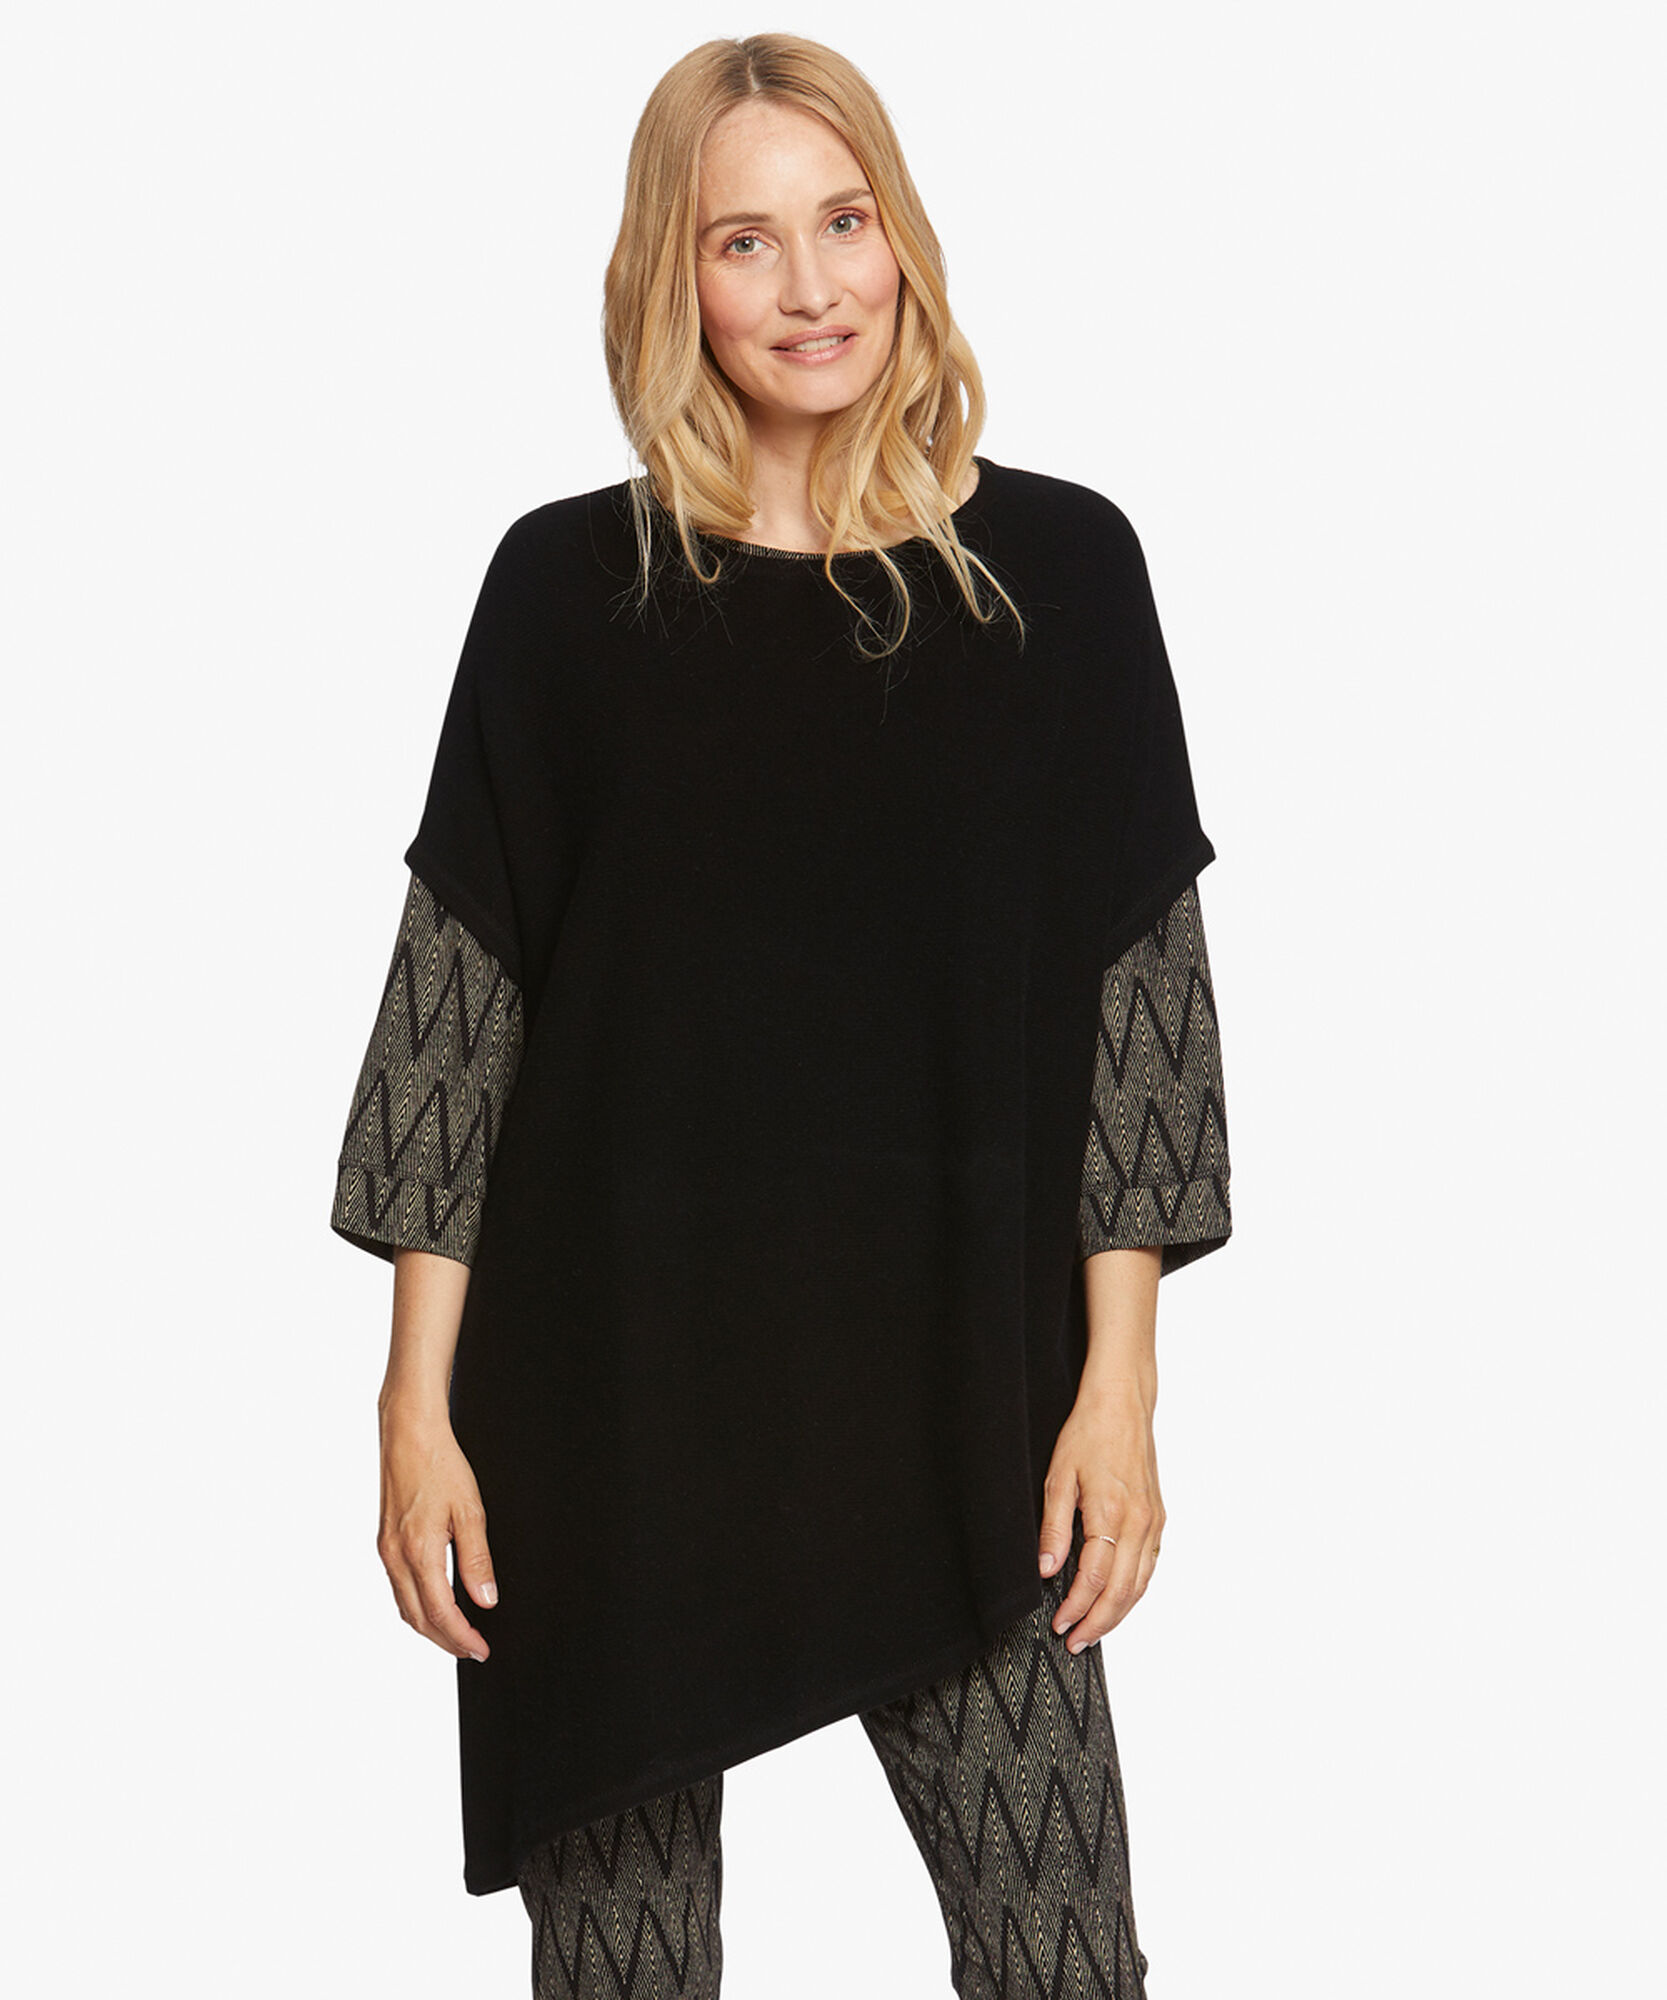 FENJANA TOP, Black, hi-res